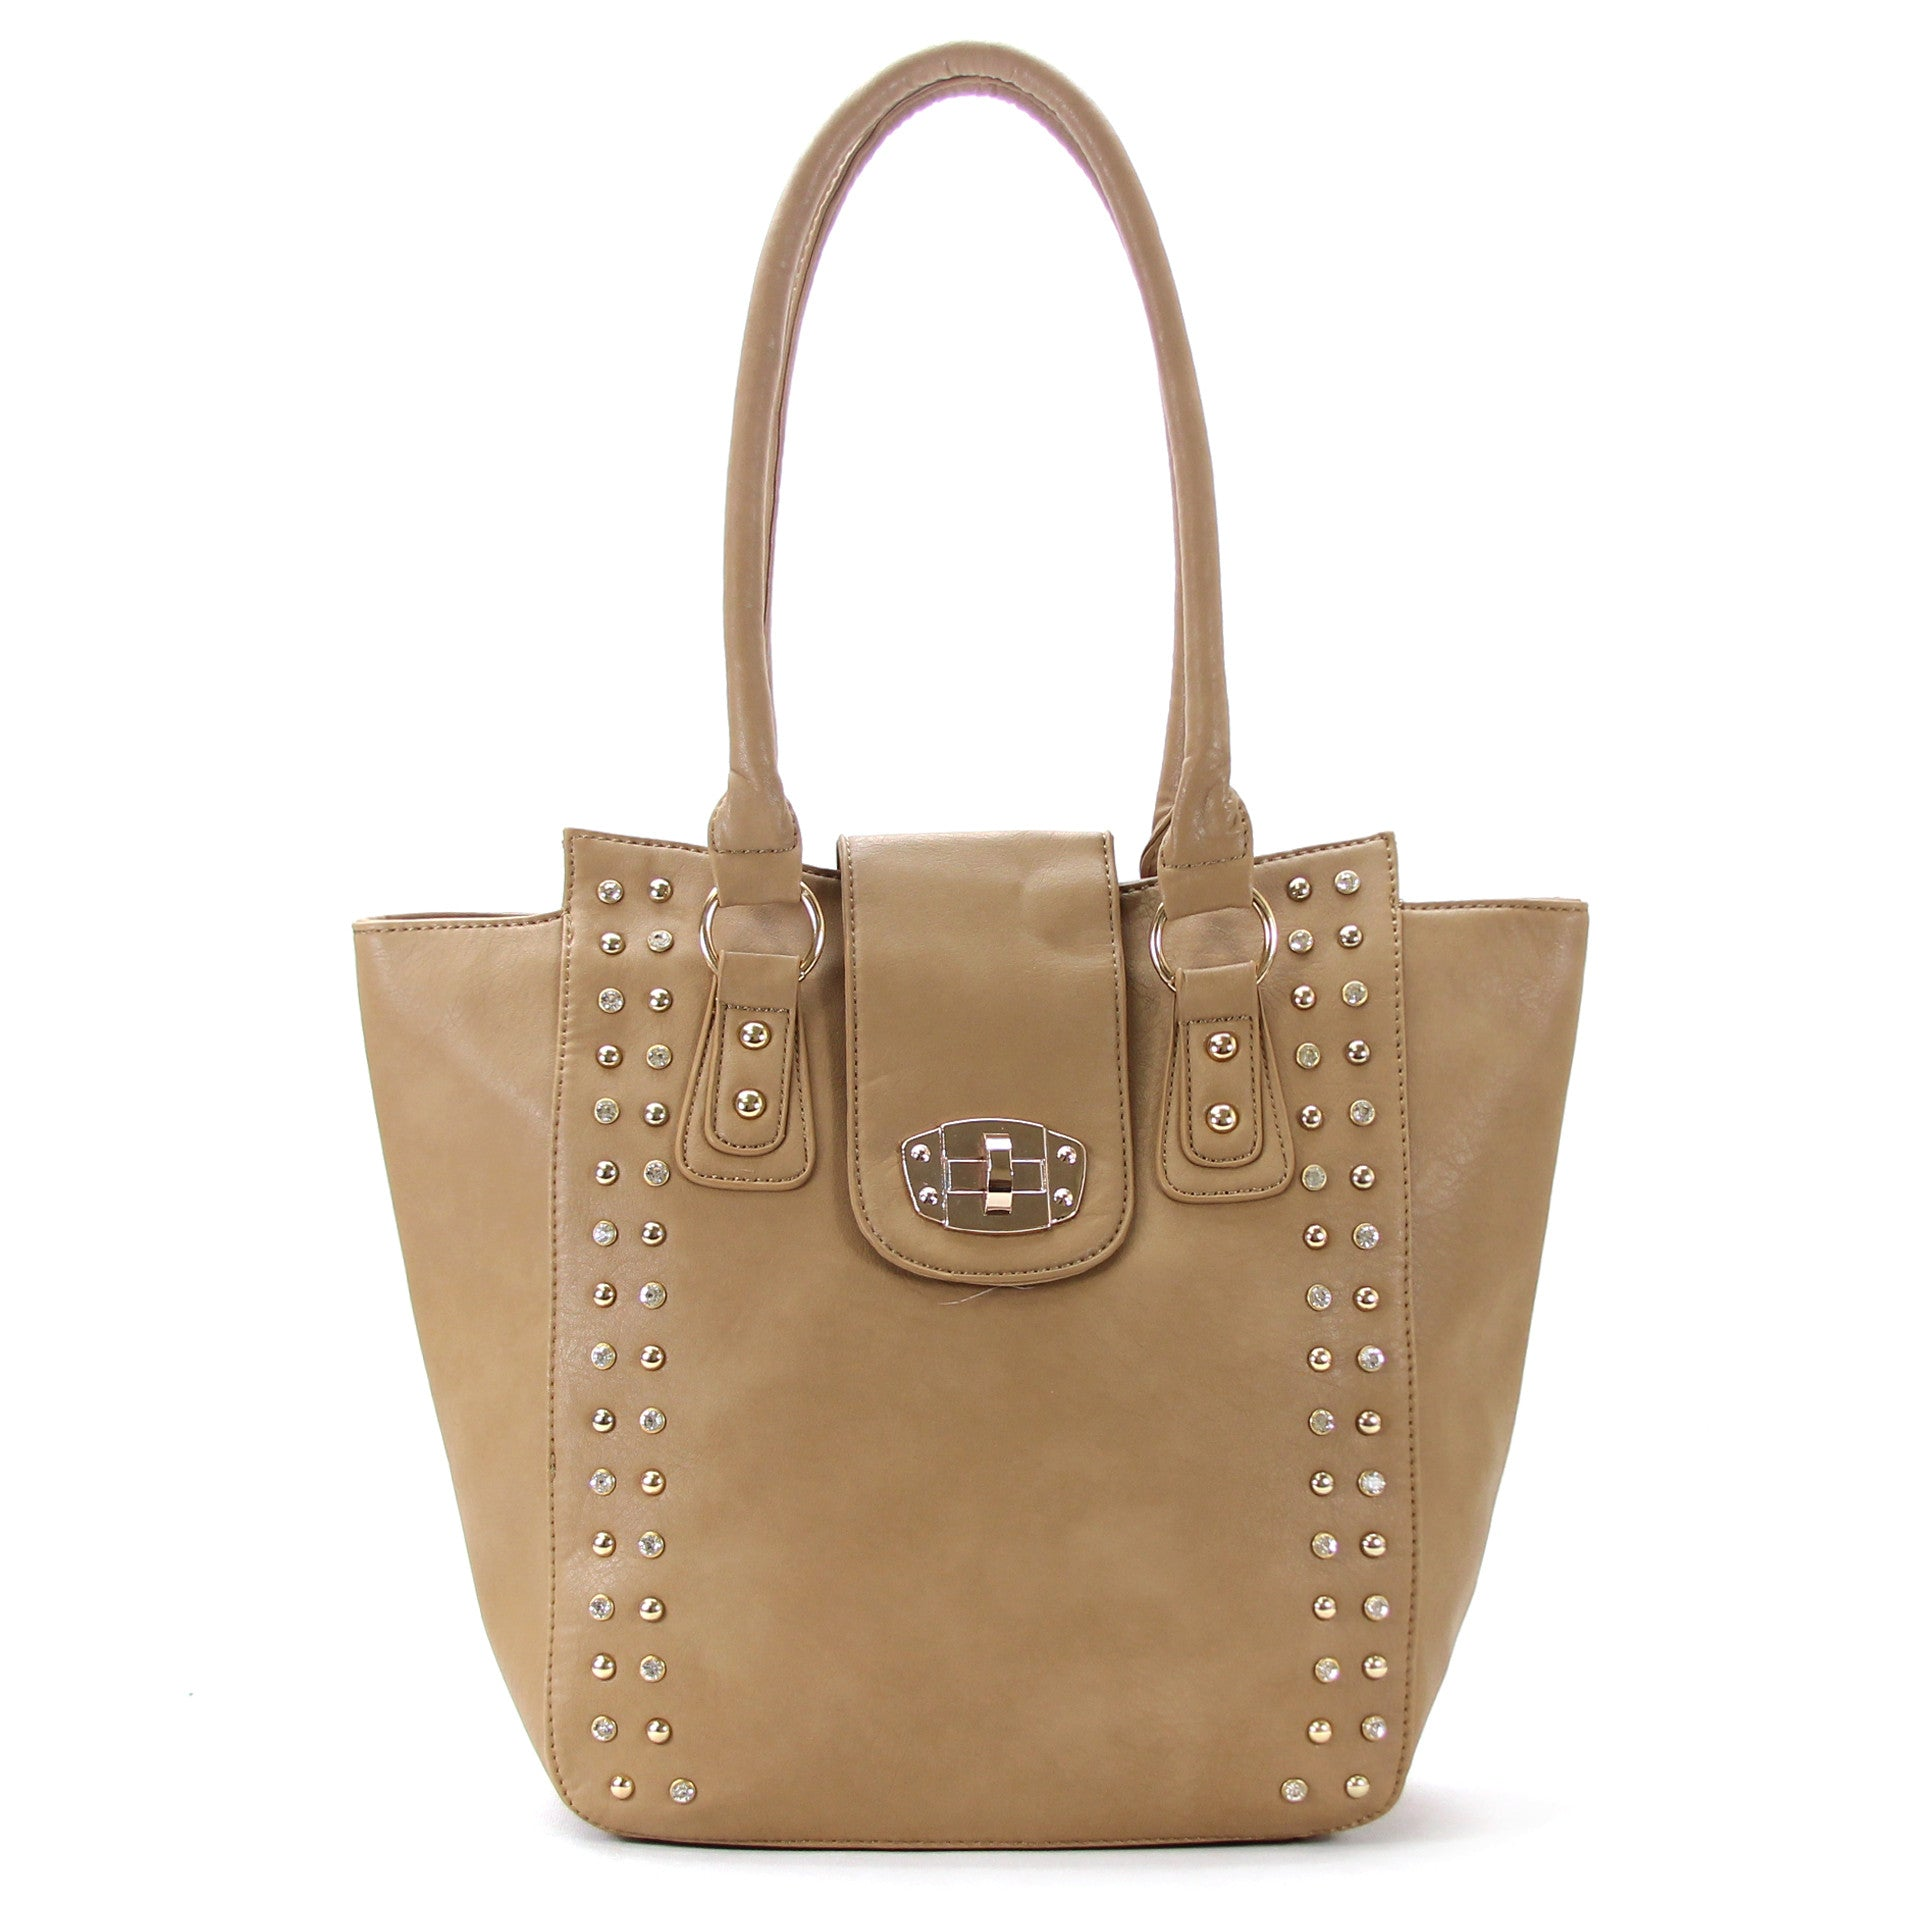 Classic Universal studded Purse Handbag Tote Bag - Khaki - Pop Fashion